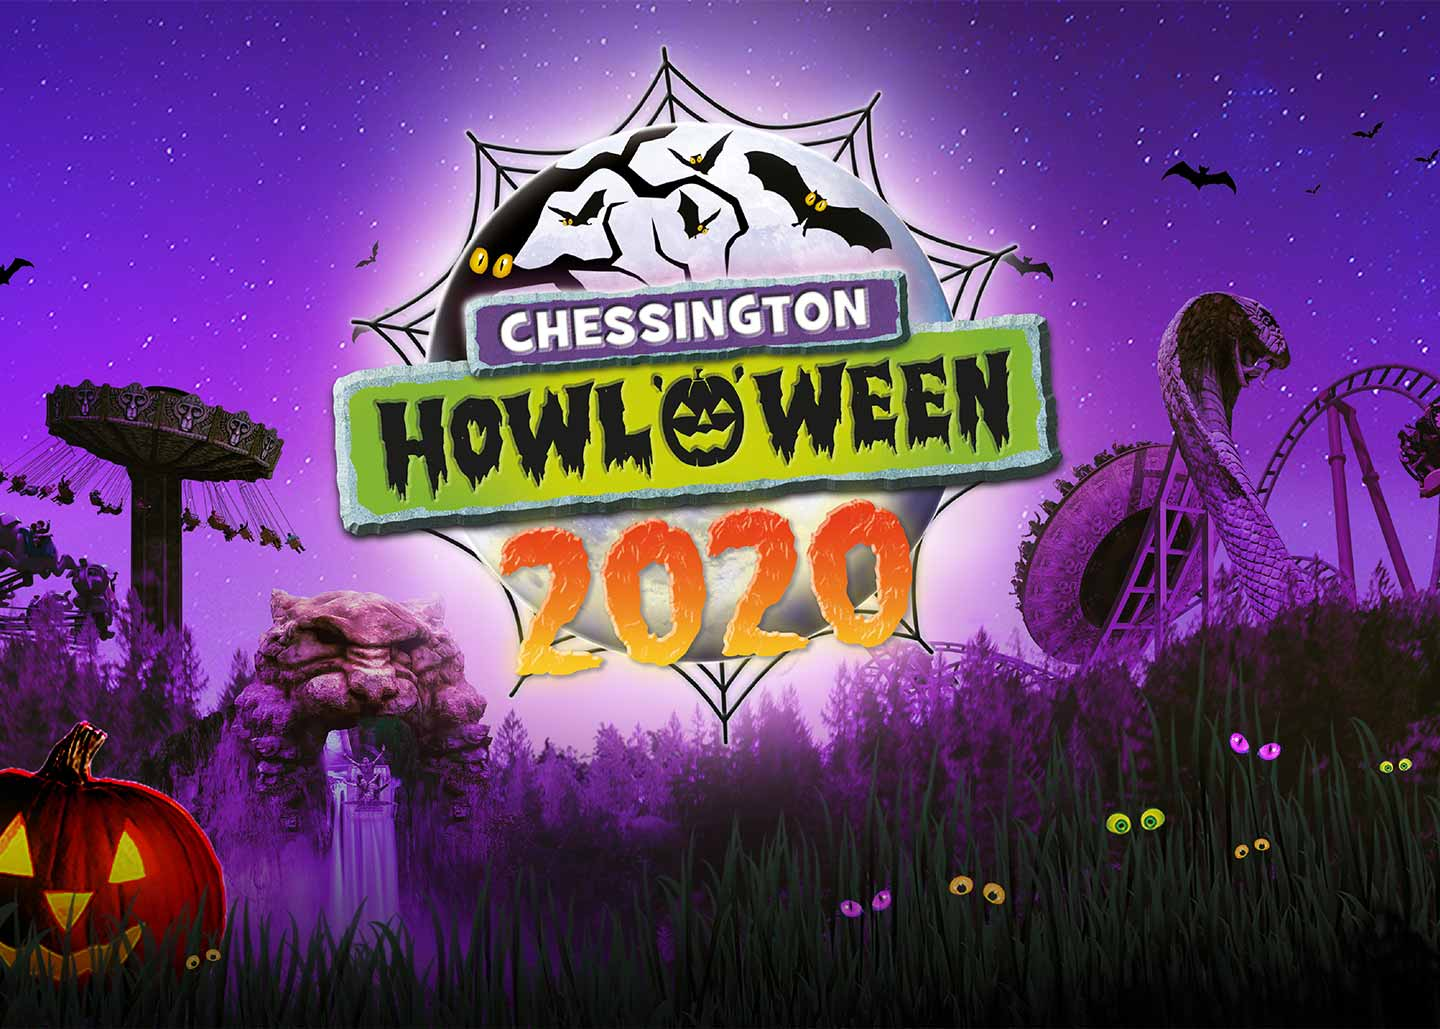 Halloween at Chessington World of Adventures 2019